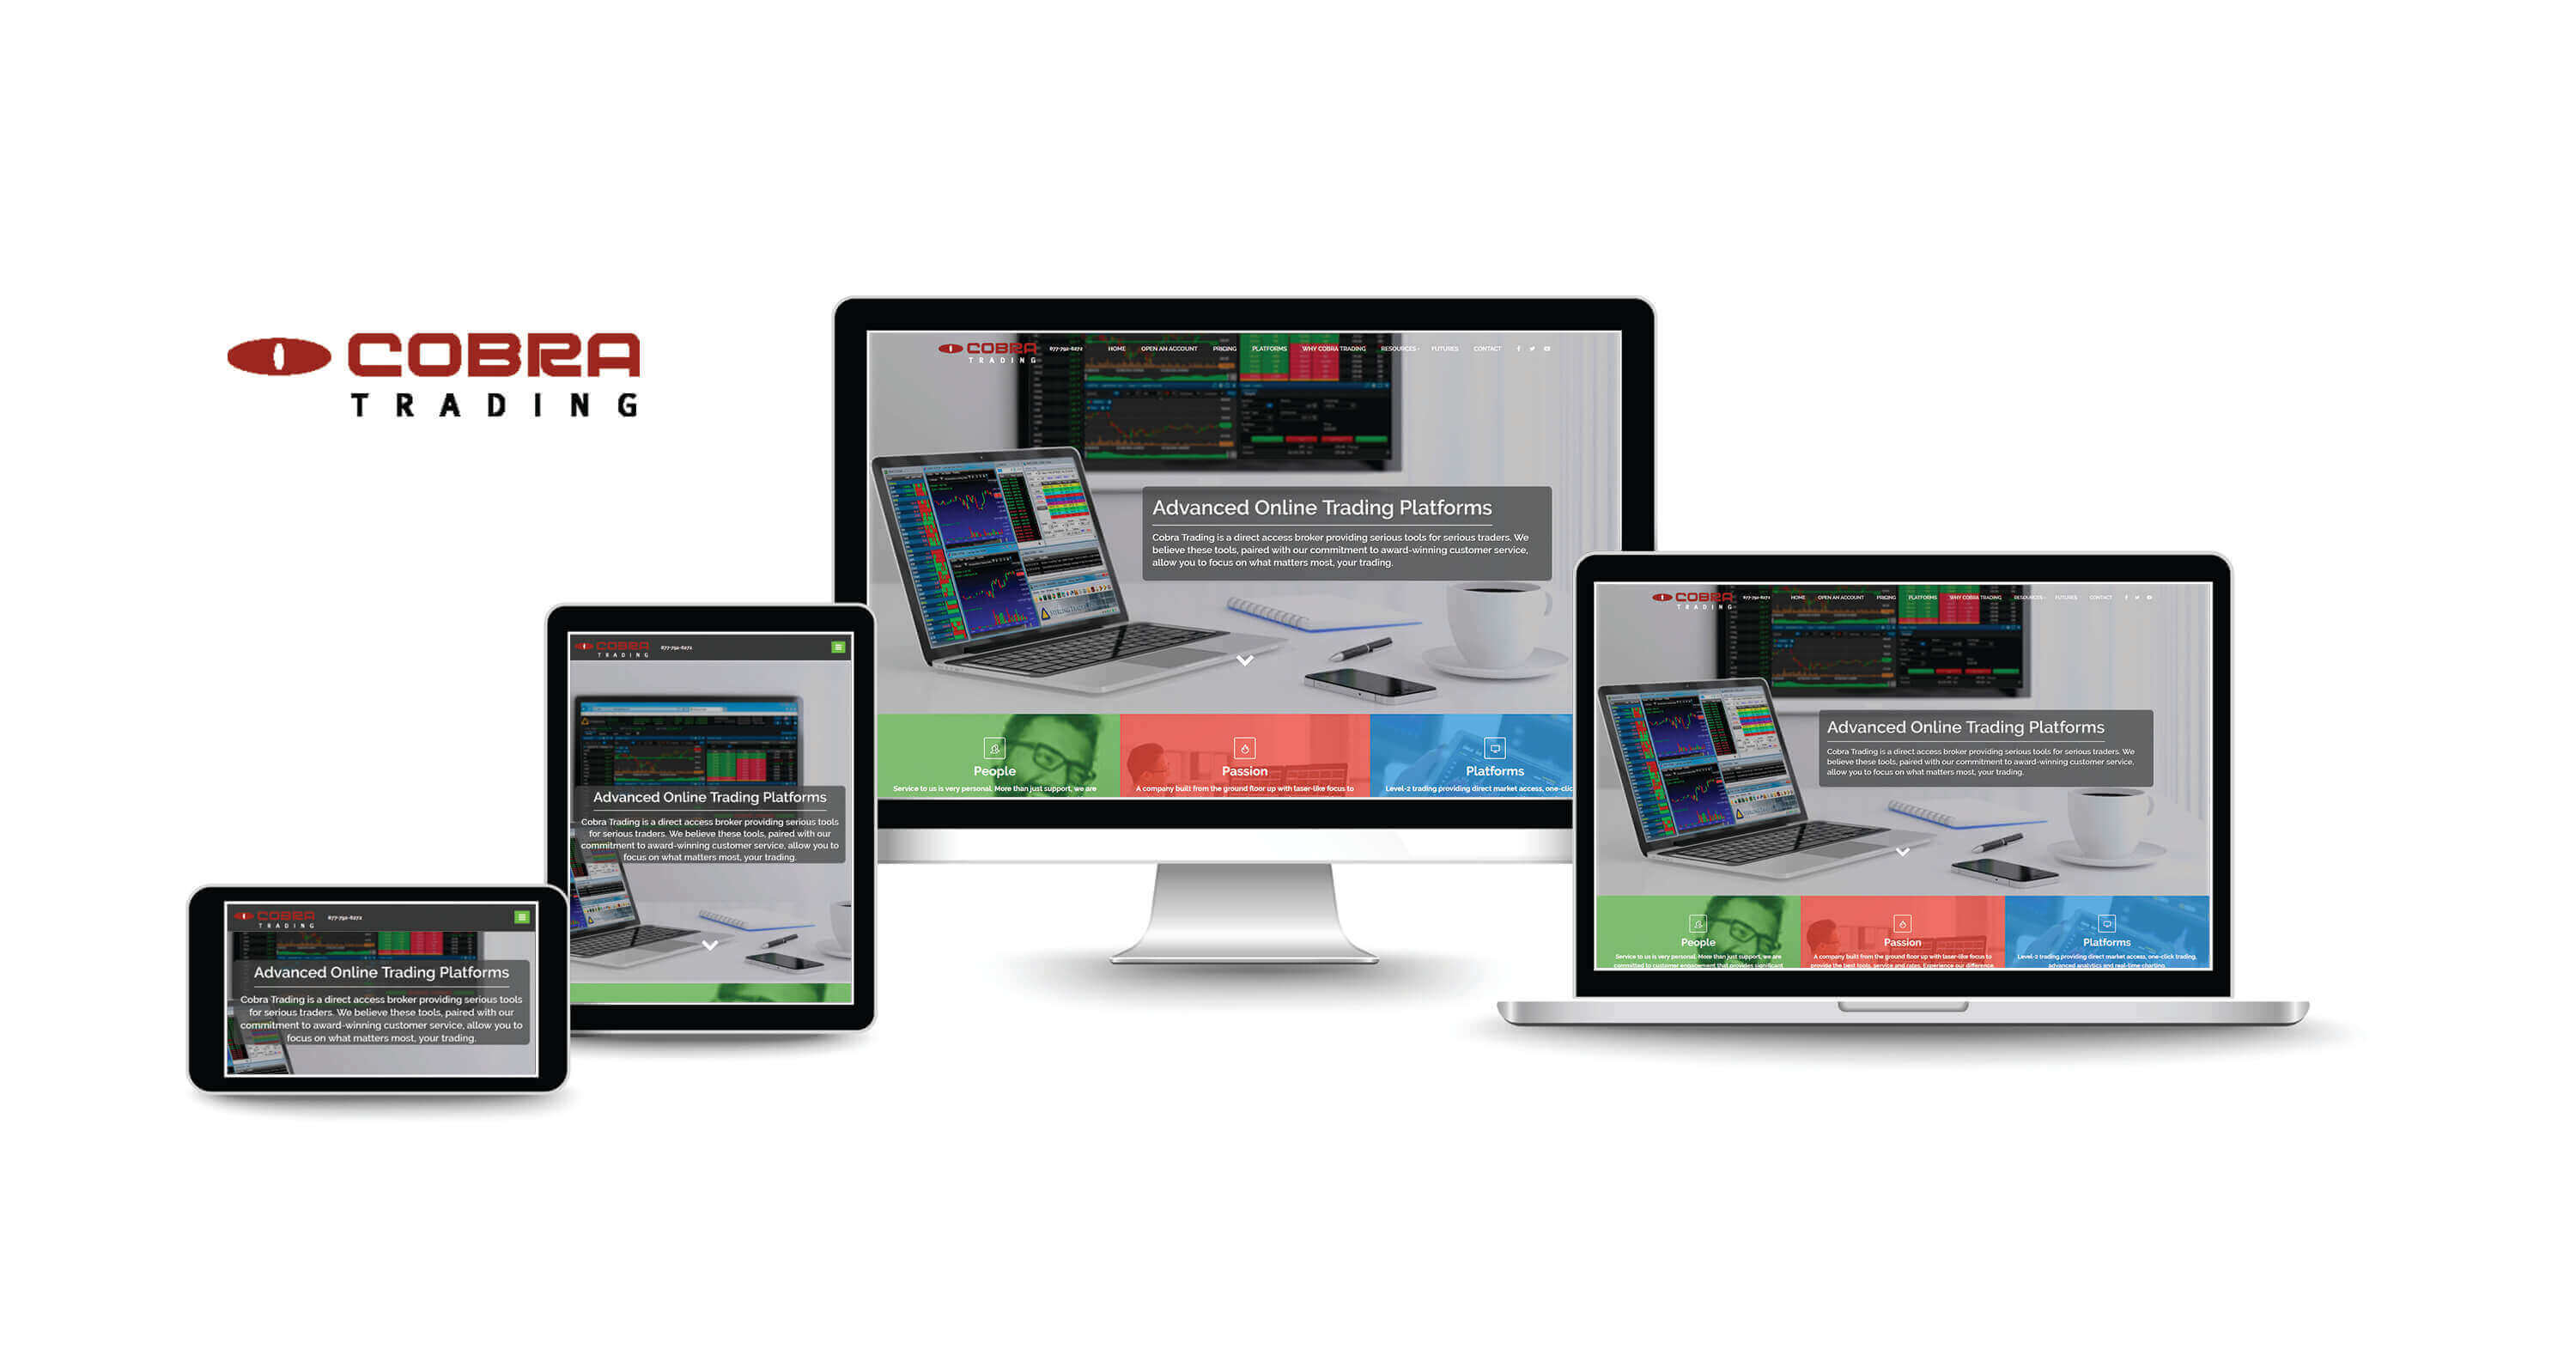 website design company for online trading firms